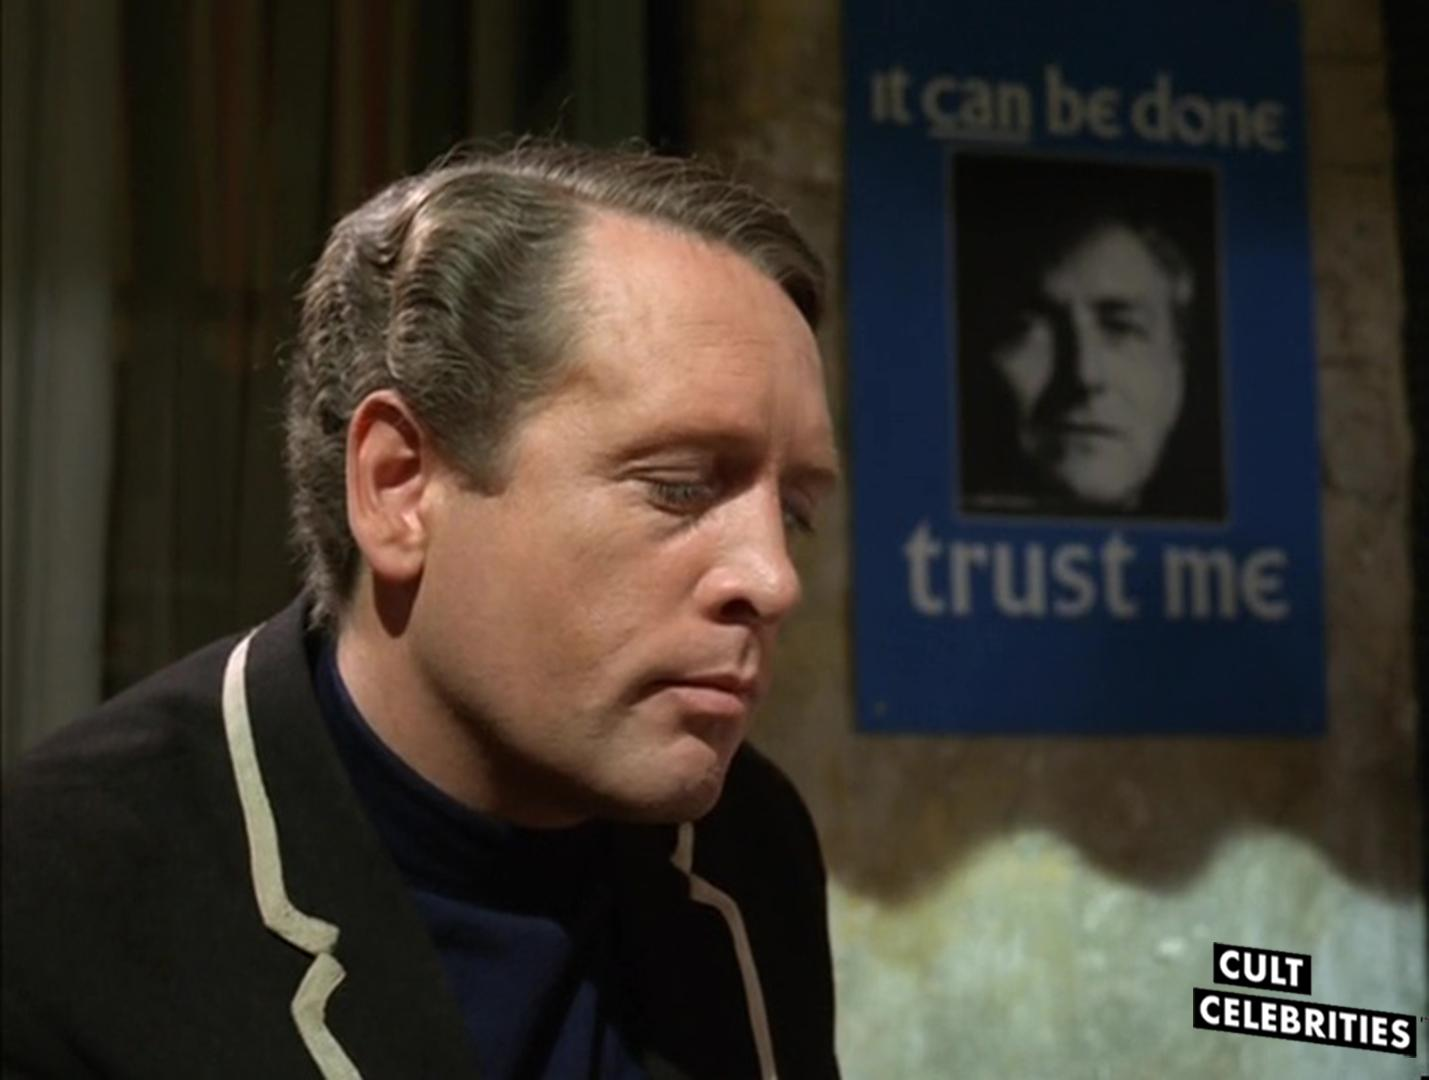 Patrick McGoohan in The Prisoner S01E05 - The General